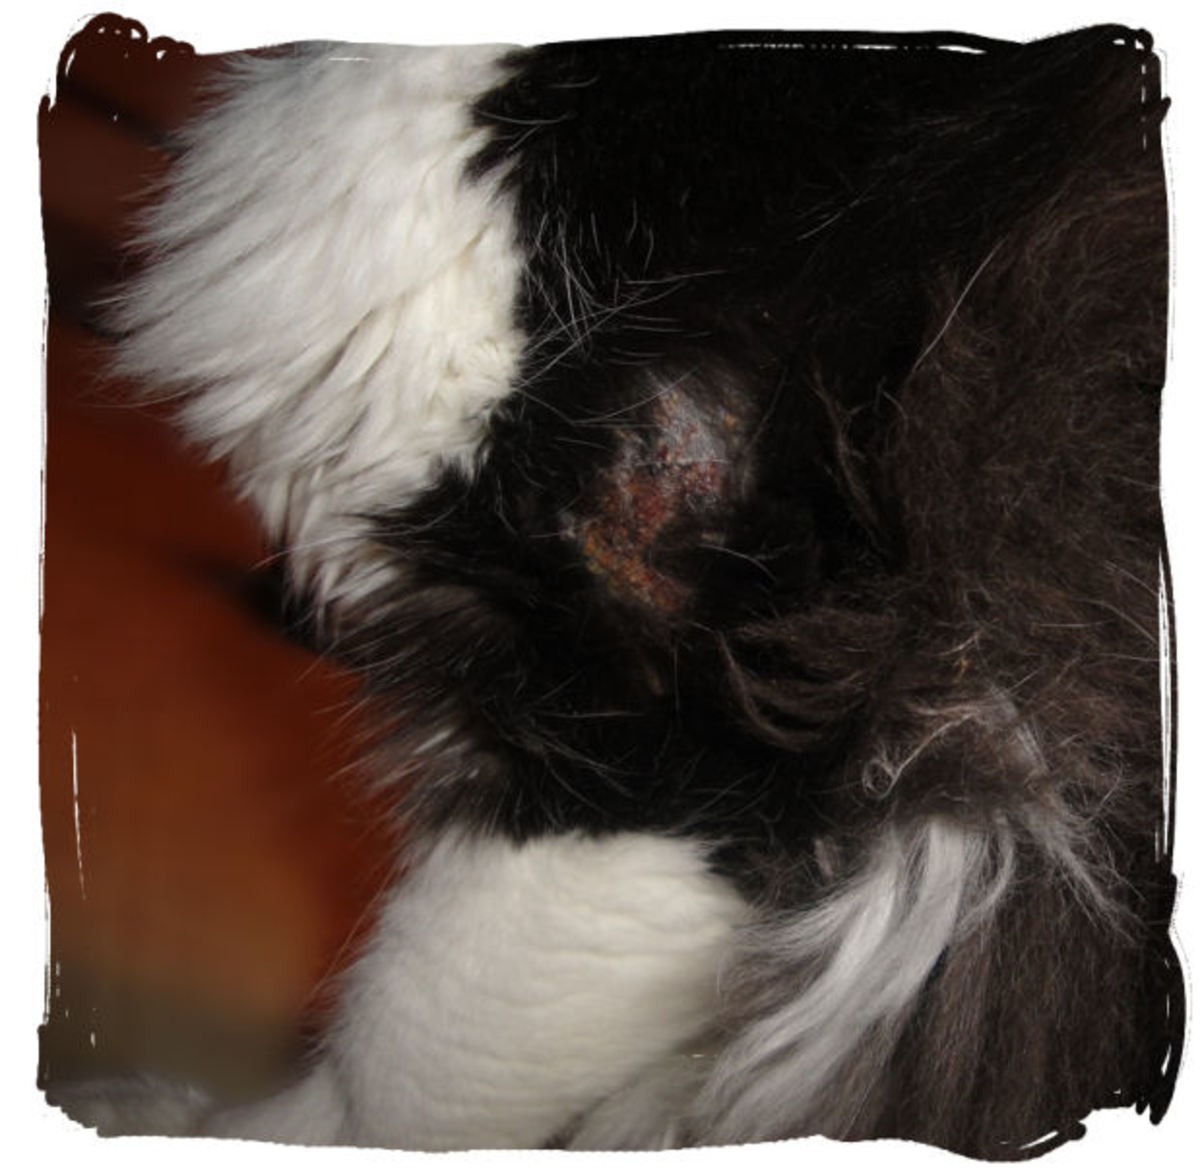 Here's an example of a hot spot on my cat. This is when it is still healing, just starting to dry up. You can see some matted fur around the edges.